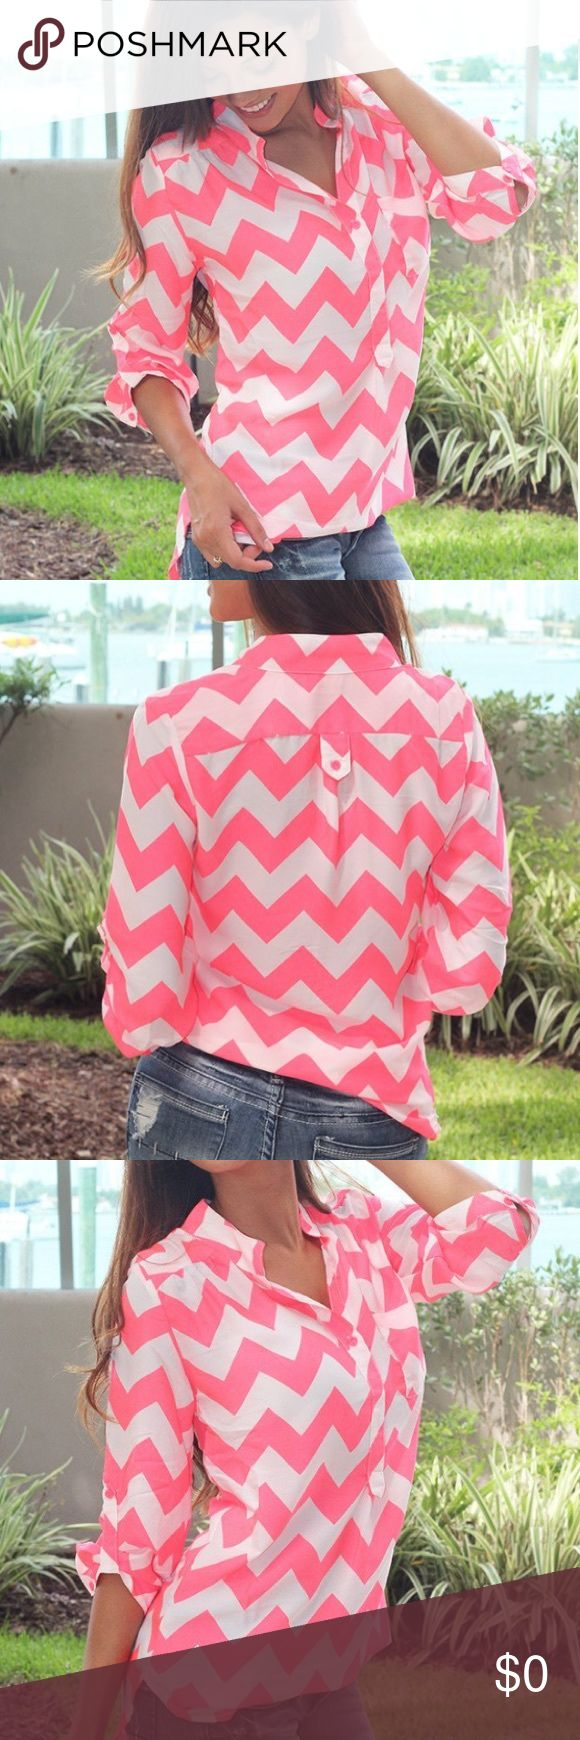 🌸New Arrival🌸Neon Coral Chevron Top You'll go CRAZY for this one! If you love chevron you NEED this new top! Sweet and simple, this neon coral and white chevron top goes with everything . Check out other cute tops at our trendy online boutique! 100% Polyester  Length:  - small: 29 inches -medium: 29.5 inches -large: 30 inches Model is 5'6, 32 C bust, size 0/2 pants, size small top and is wearing a size small. Loose fit. Sheer. Chevron print. Rolled up sleeves. One front pocket. Tops…